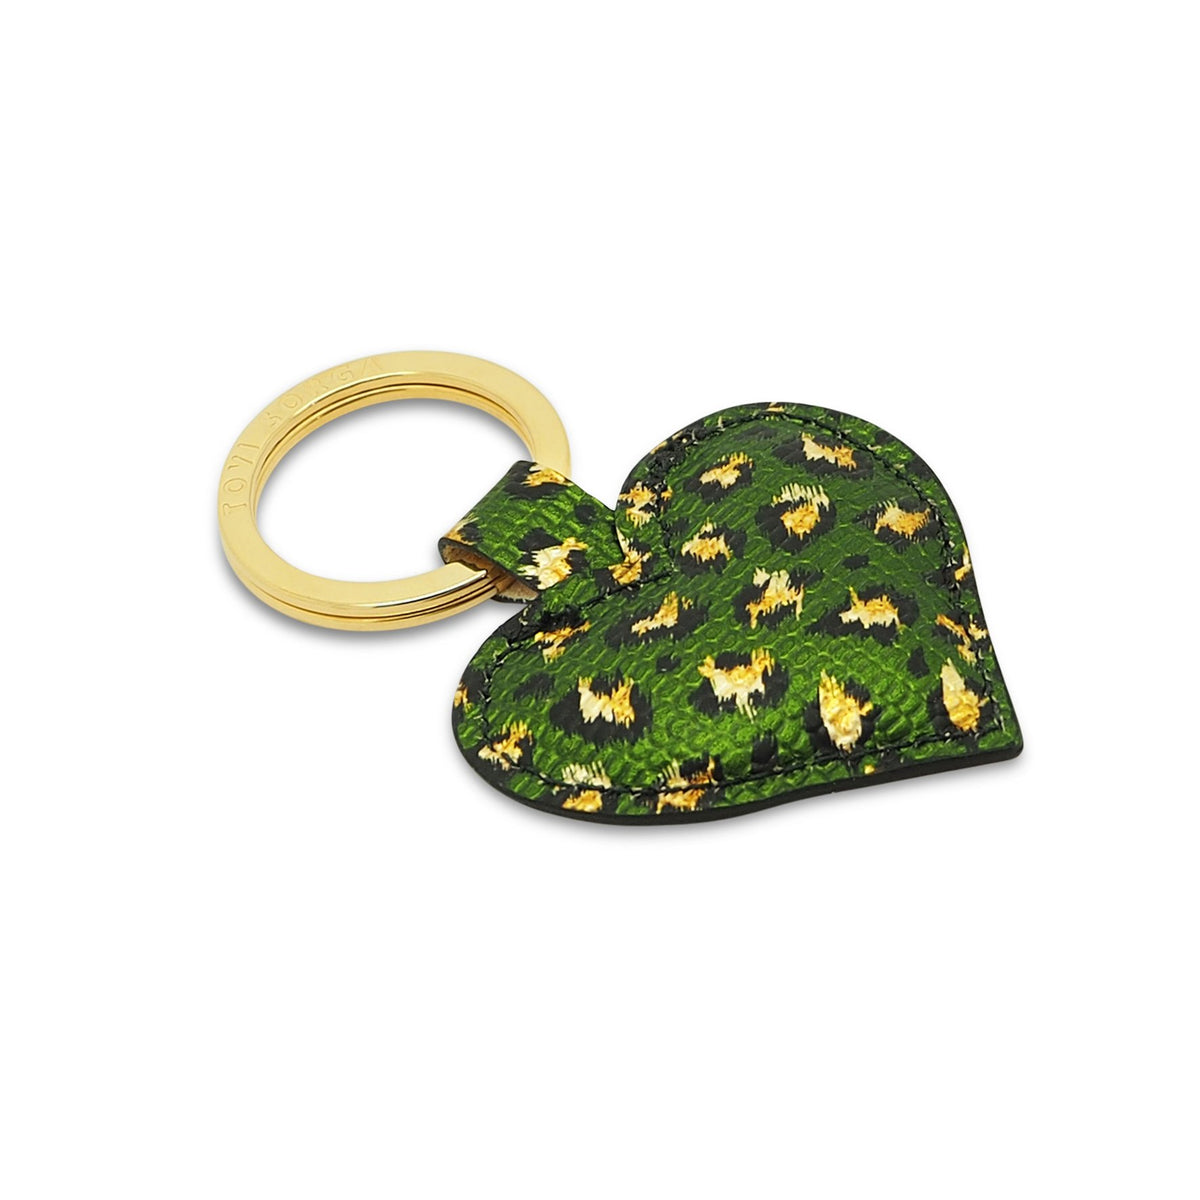 Metallic Leather Contactless Payment Key Ring - Green and Gold Leopard Print Tovi Sorga Green